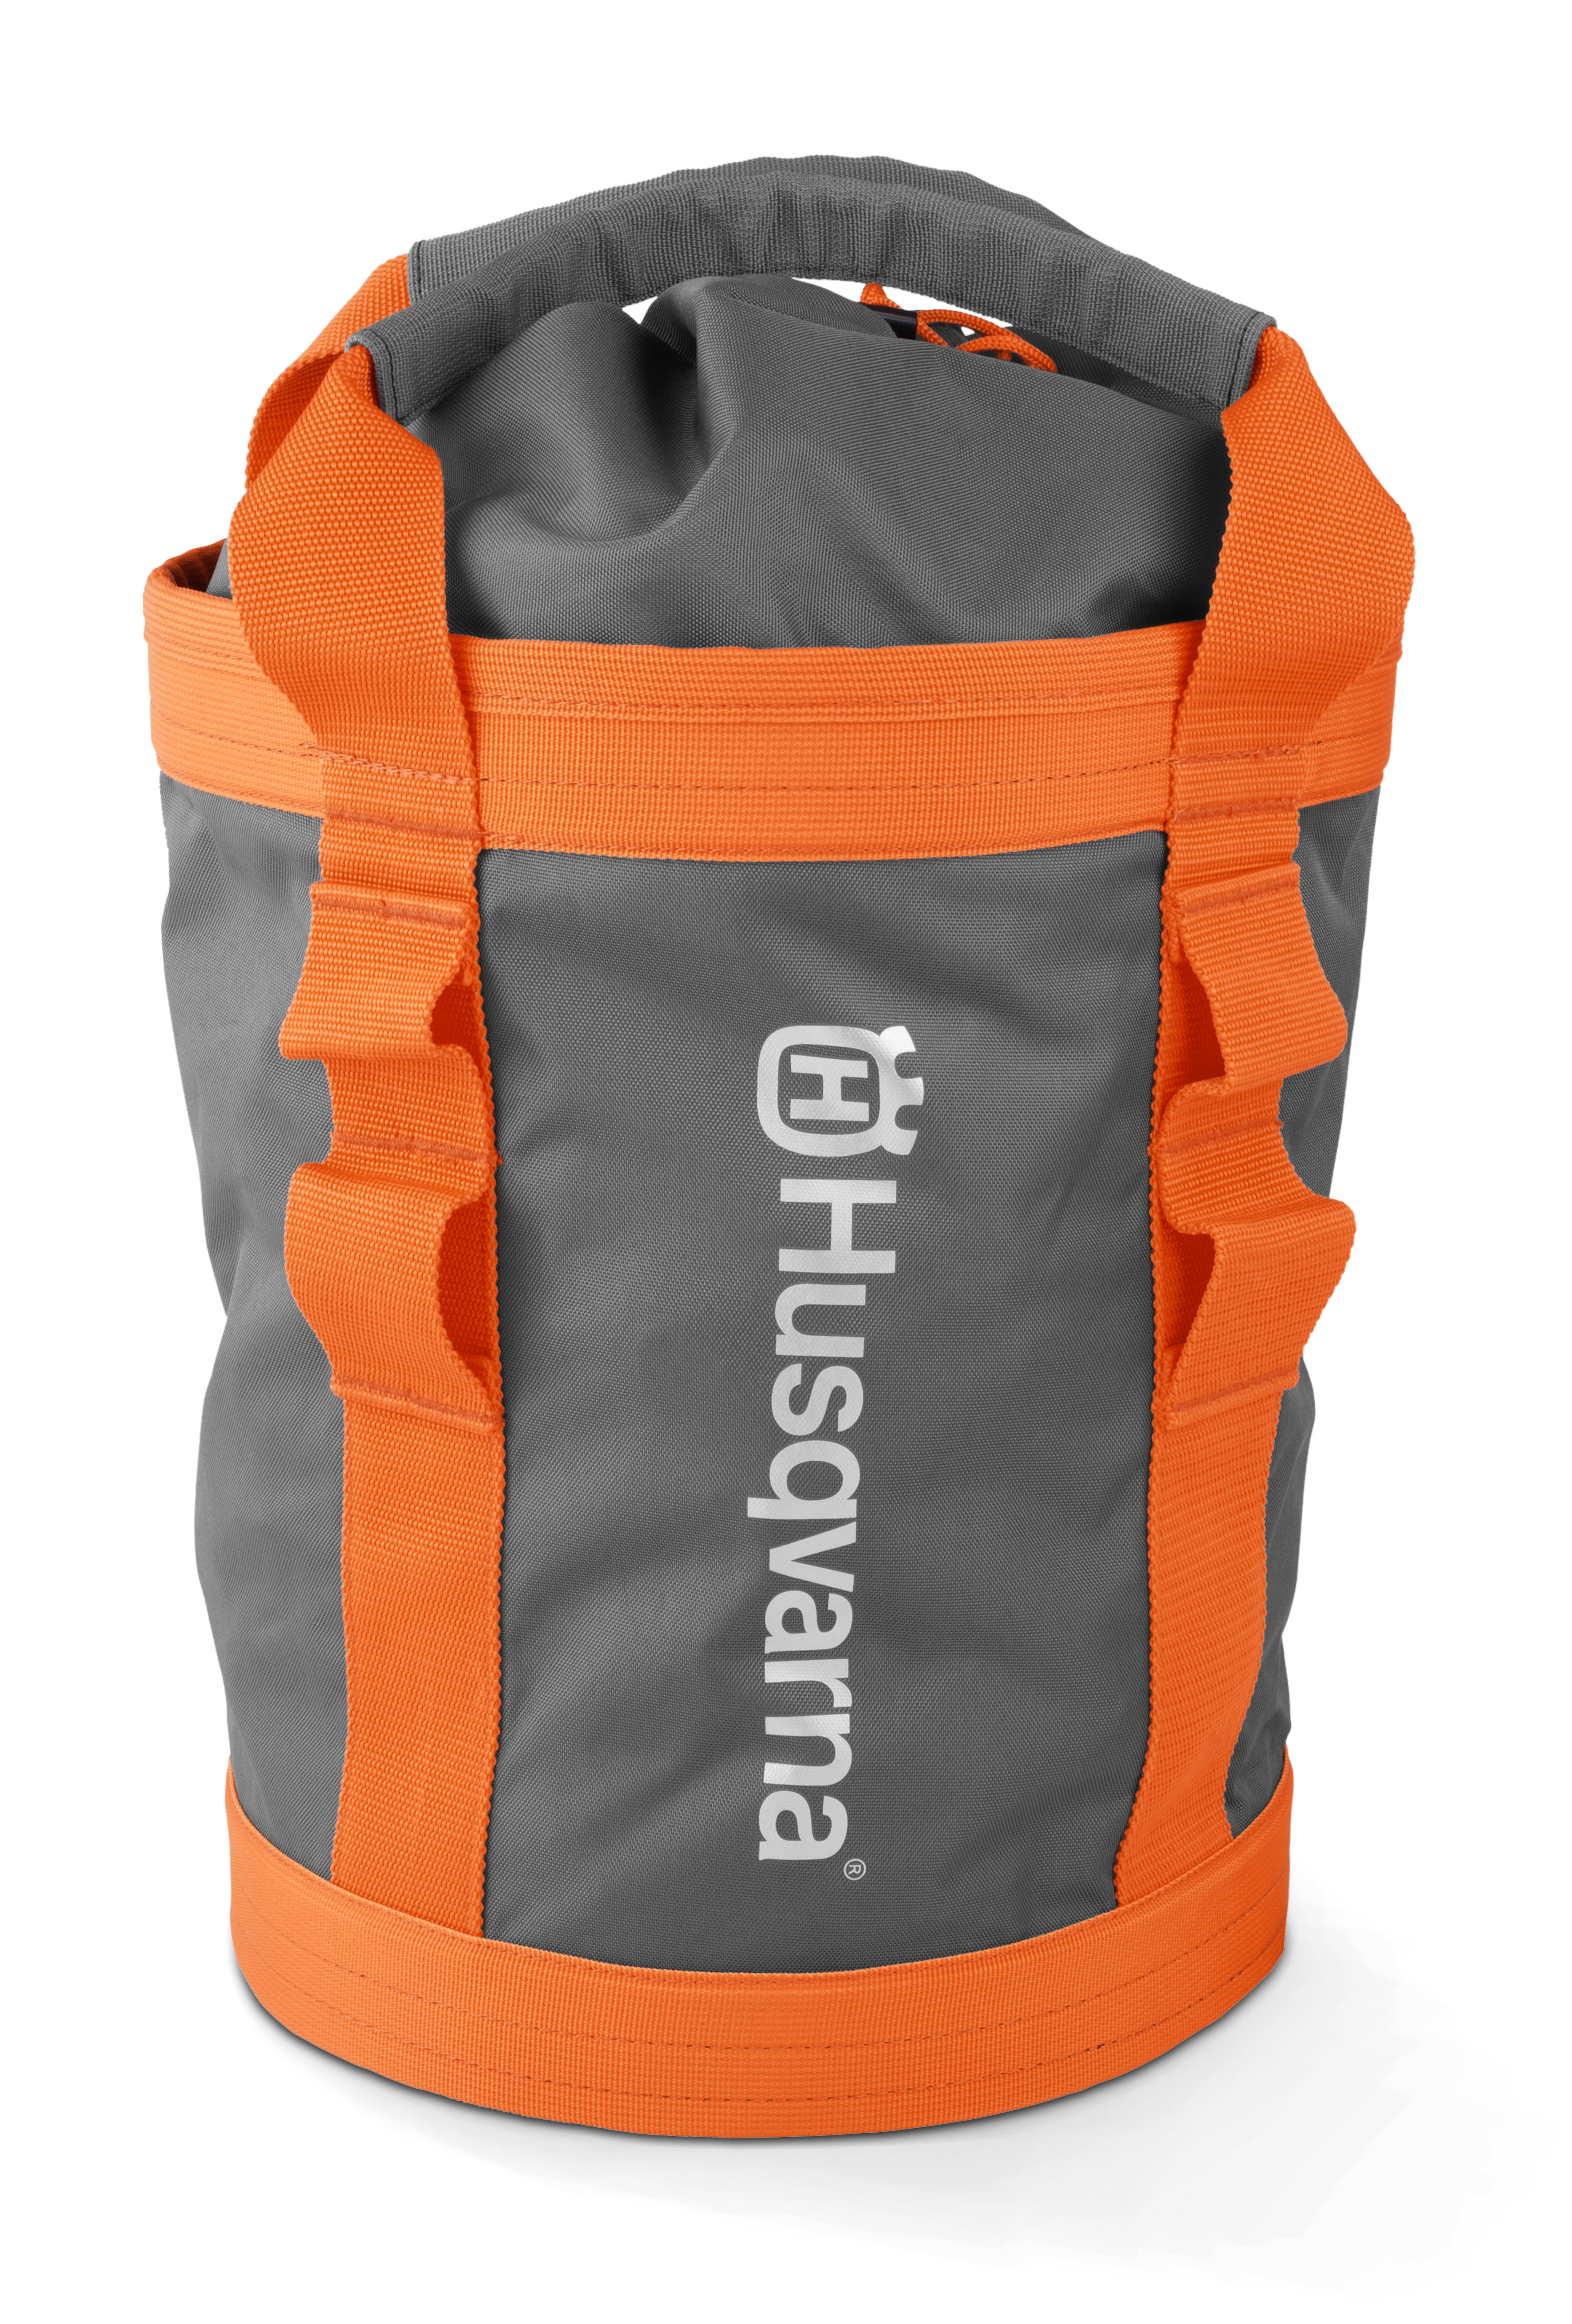 Image for Rope Bag                                                                                                                         from HusqvarnaB2C